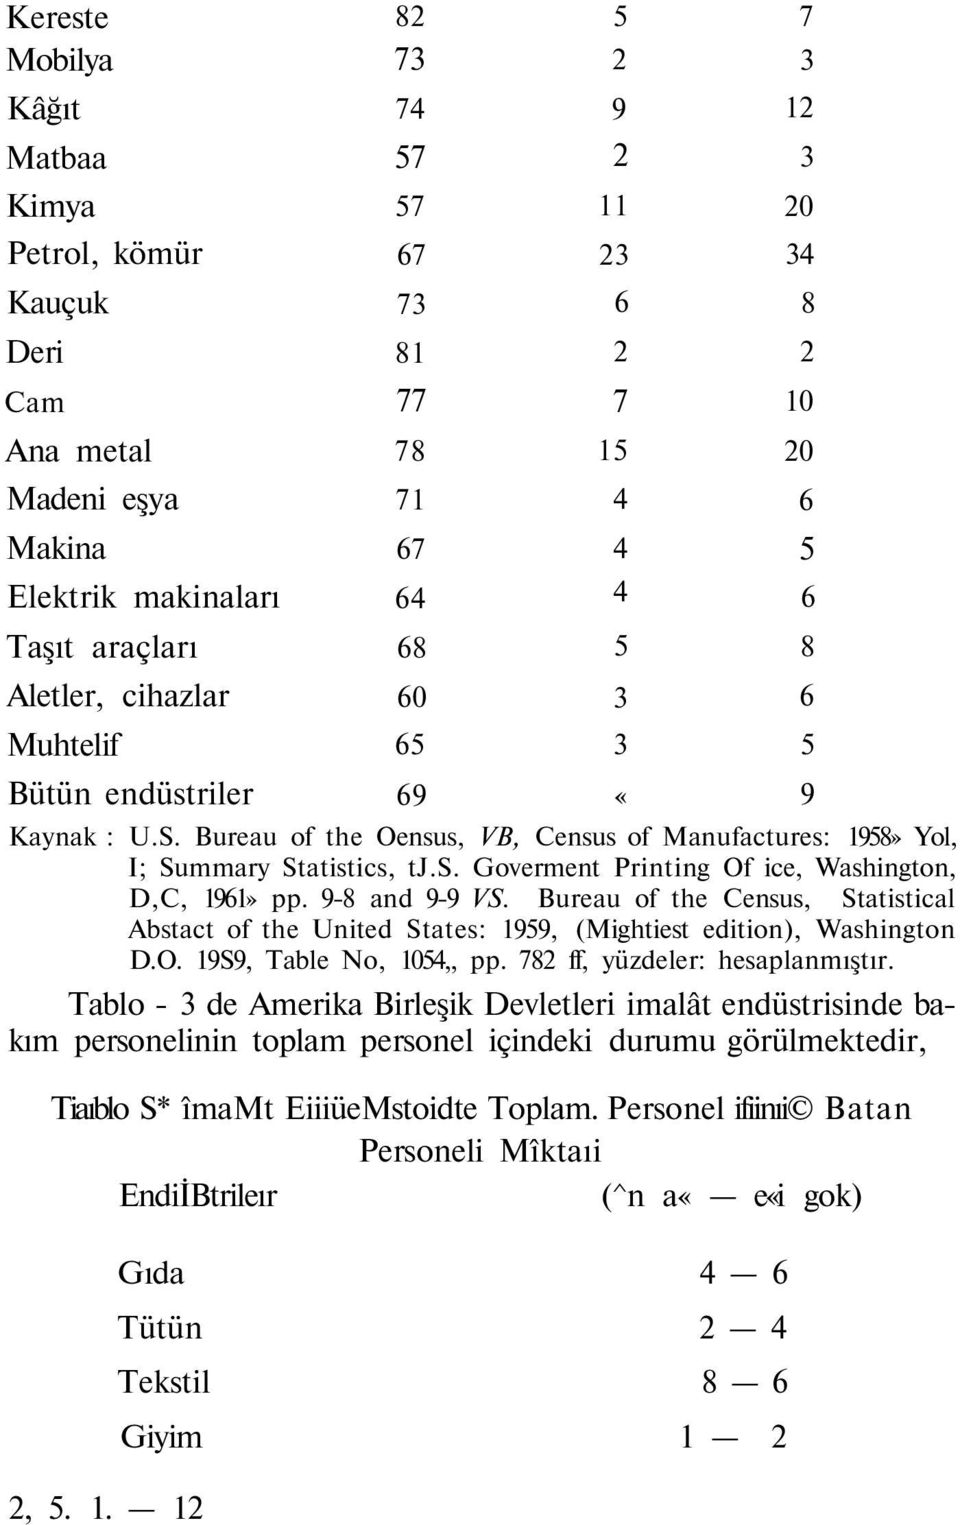 Bureau of the Census, Statistical Abstact of the United States: 1959, (Mightiest edition), Washington D.O. 19S9, Table No, 1054,, pp. 782 ff, yüzdeler: hesaplanmıştır.